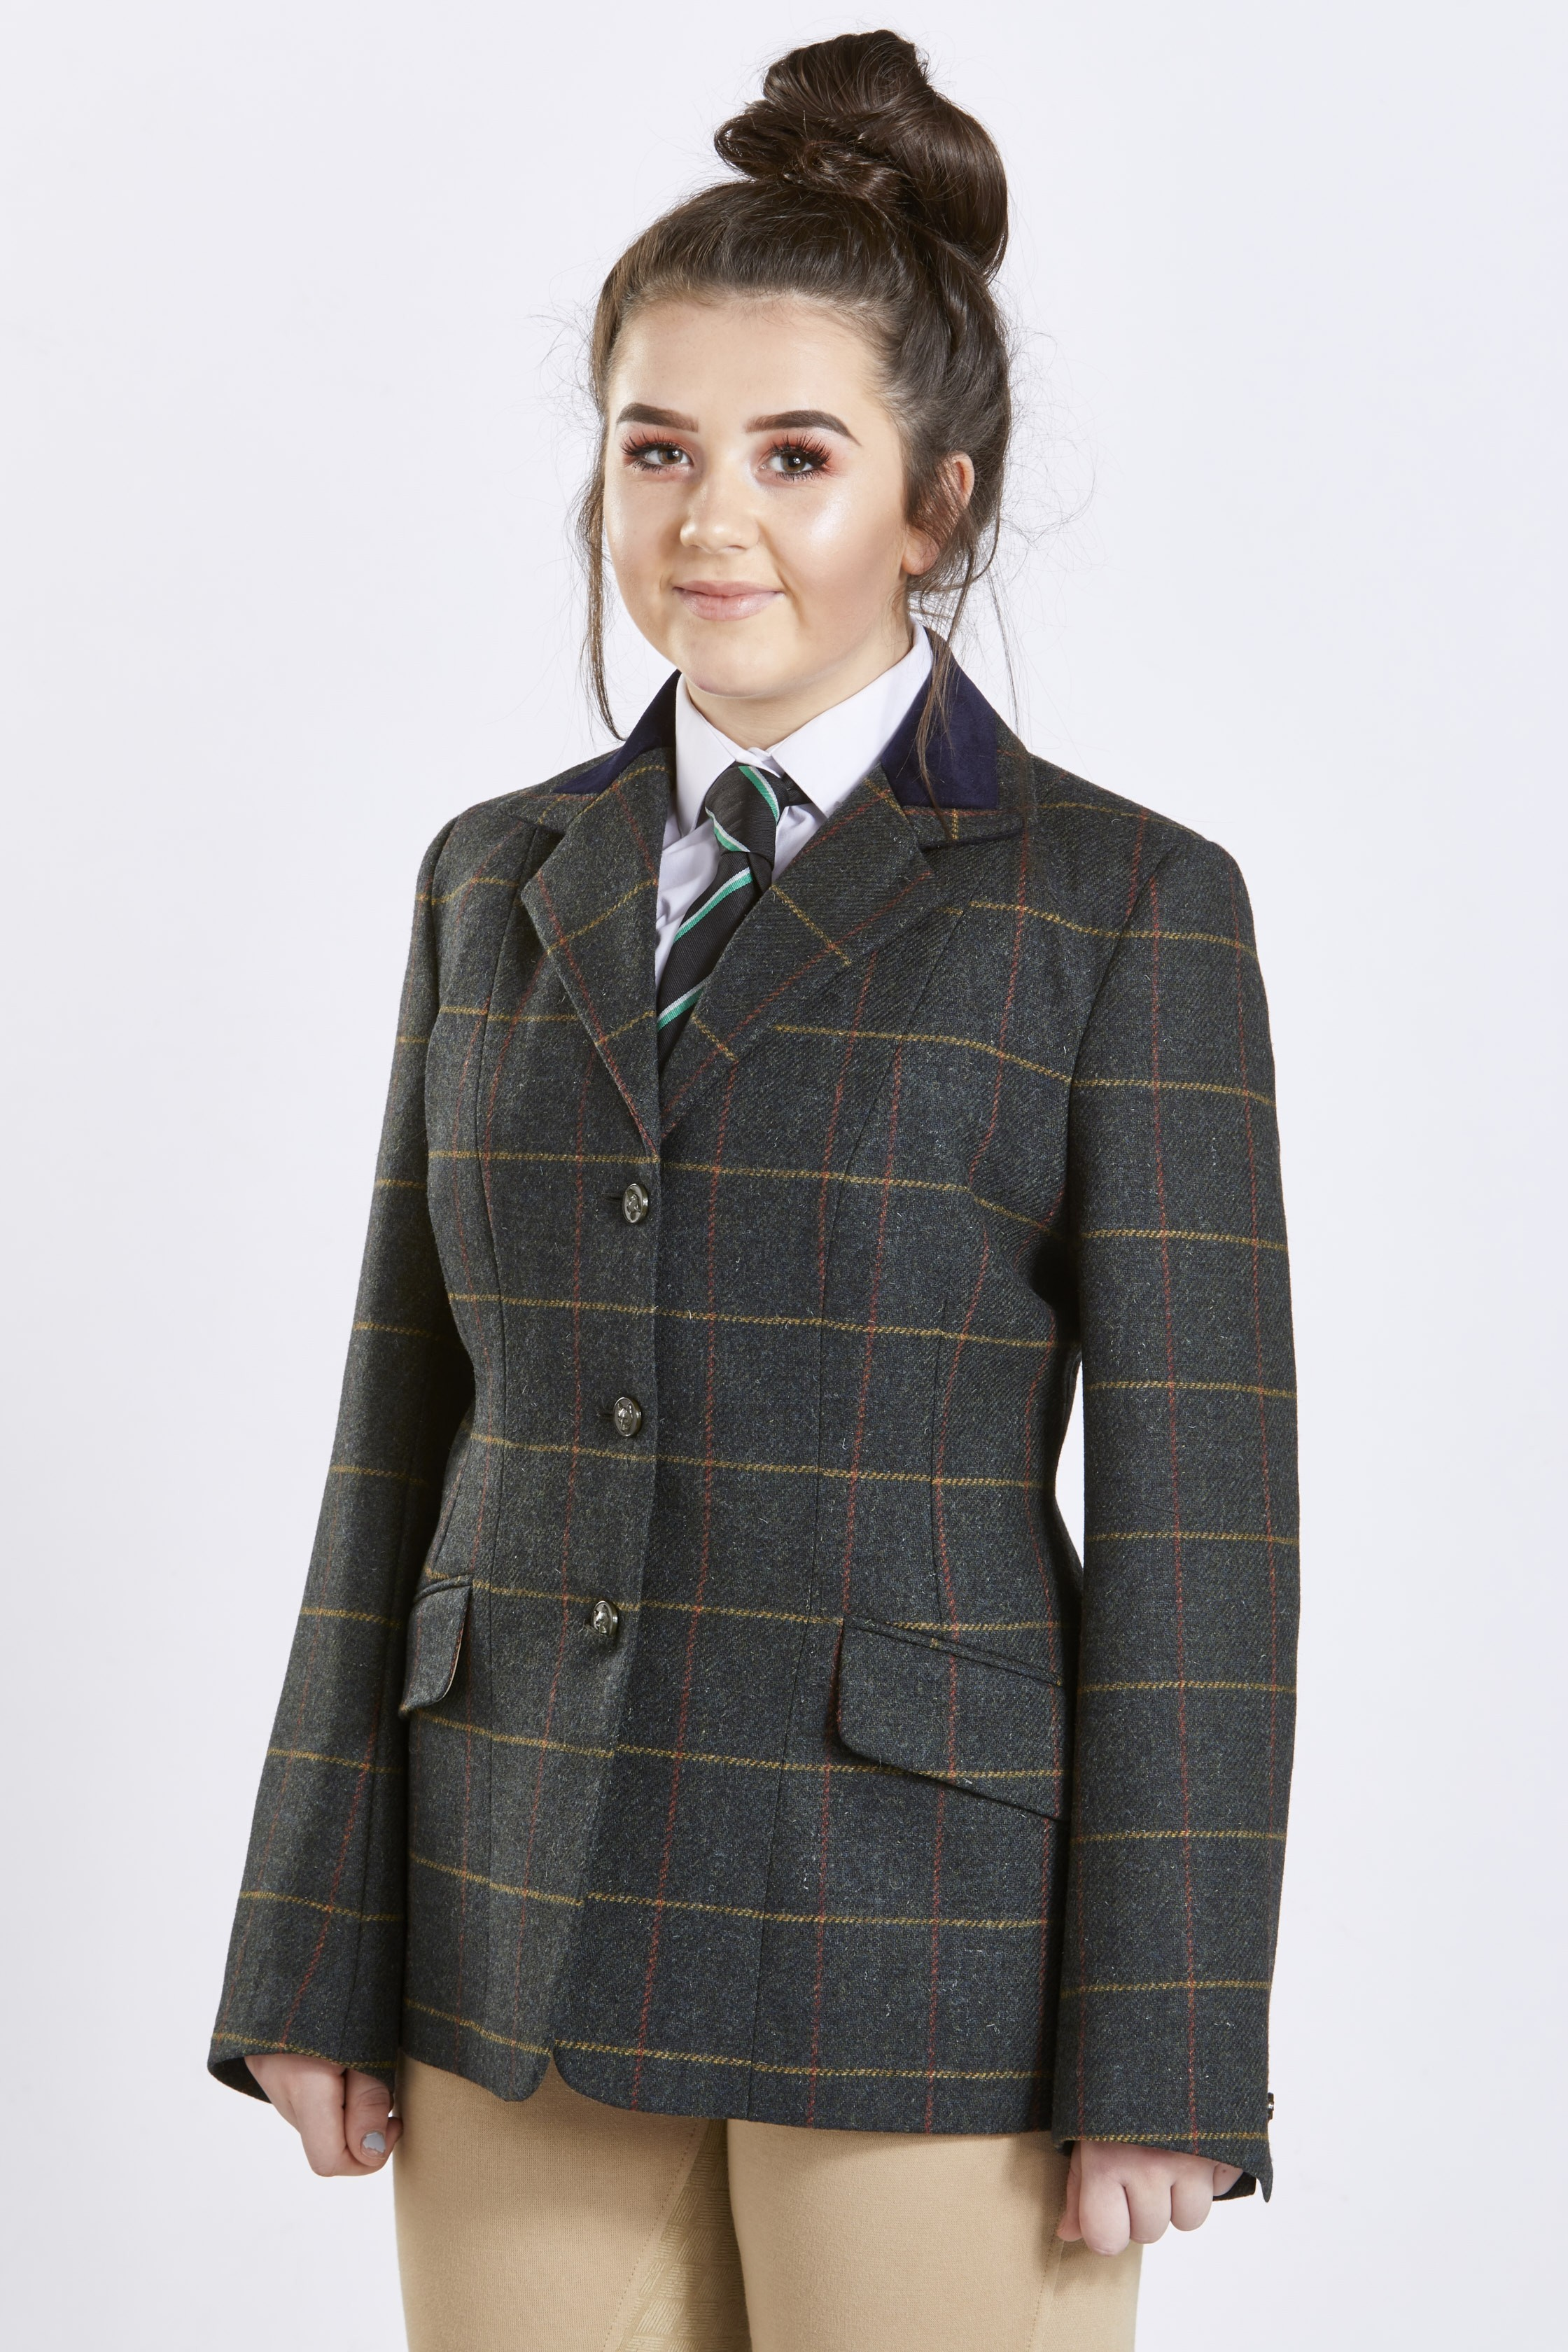 Firefoot Fewston Ladies Tweed Jacket  - Thomas Irving's equestrian and accessories store  Firefoot Fewston Ladies Tweed Jacket